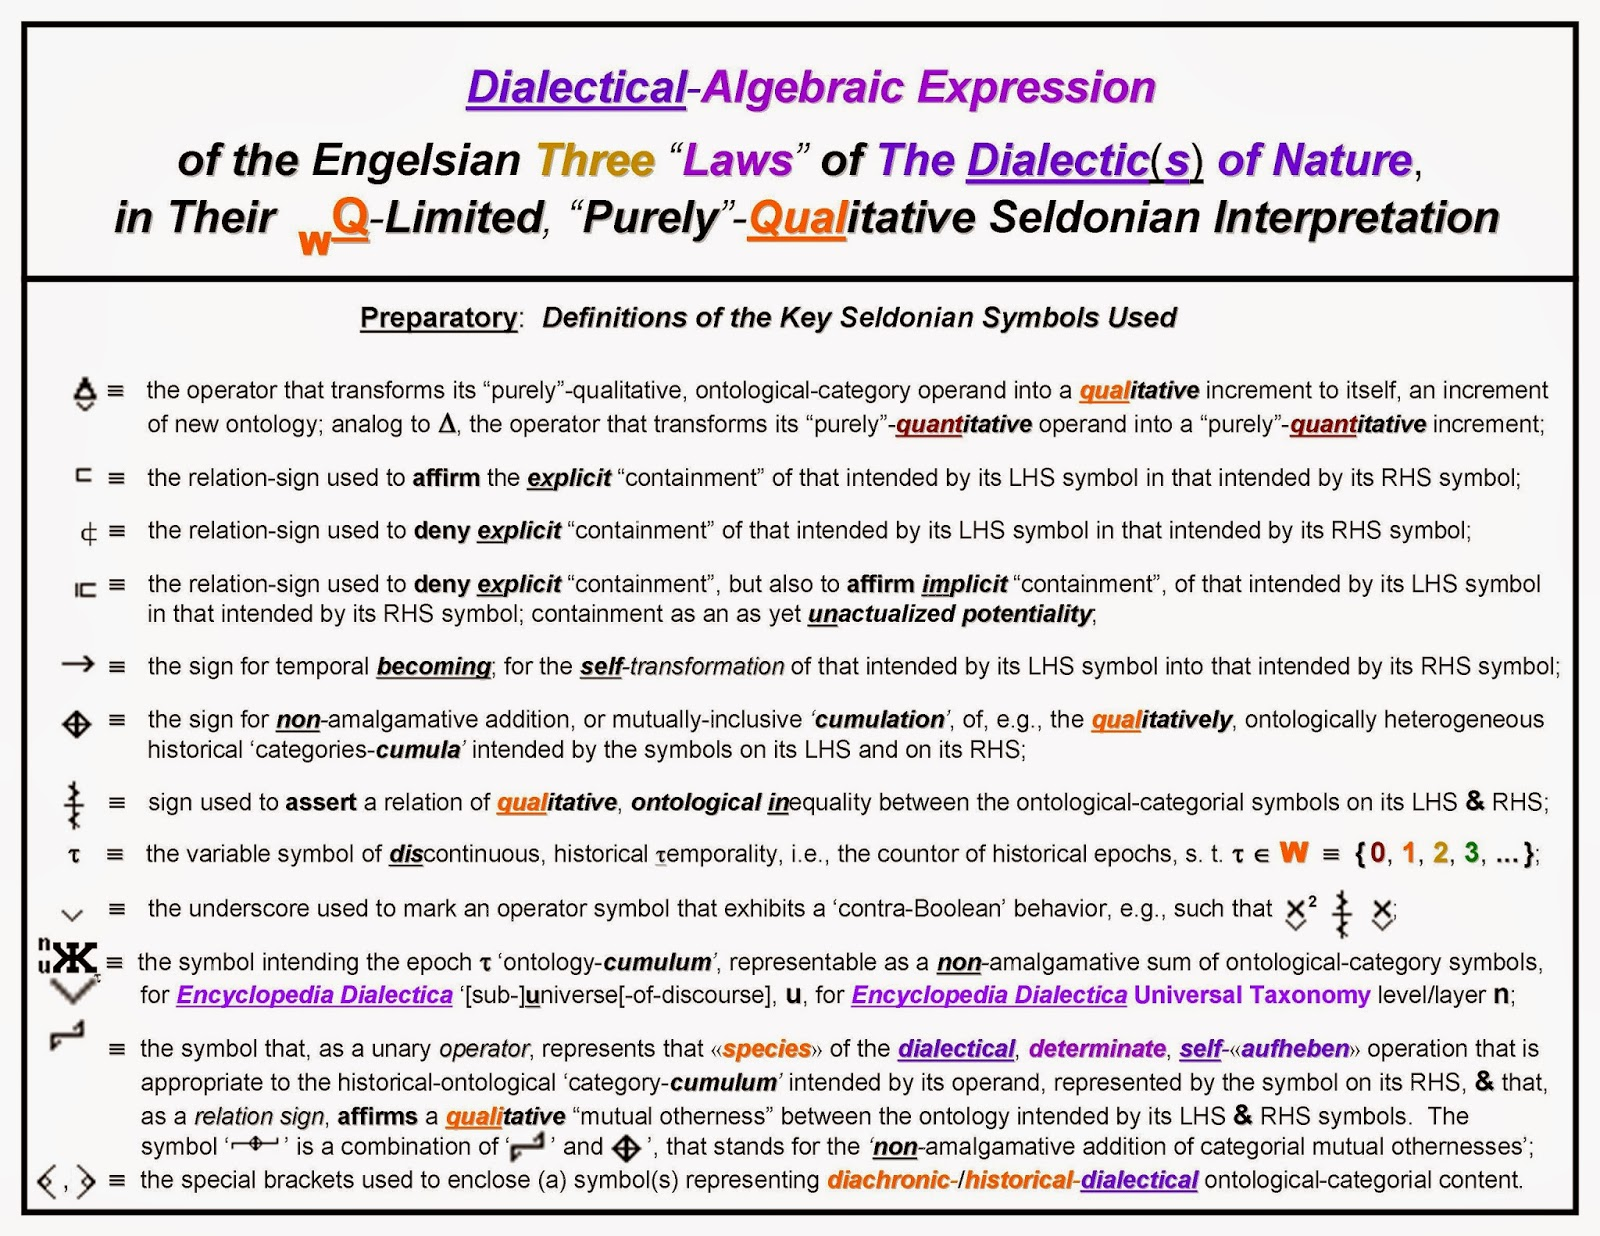 Fed dialectics dialectical algebraic expression of engelss the next task is to express engelss three laws of the dialectic of nature in terms of the symbols defined above and in accordance with the seldonian biocorpaavc